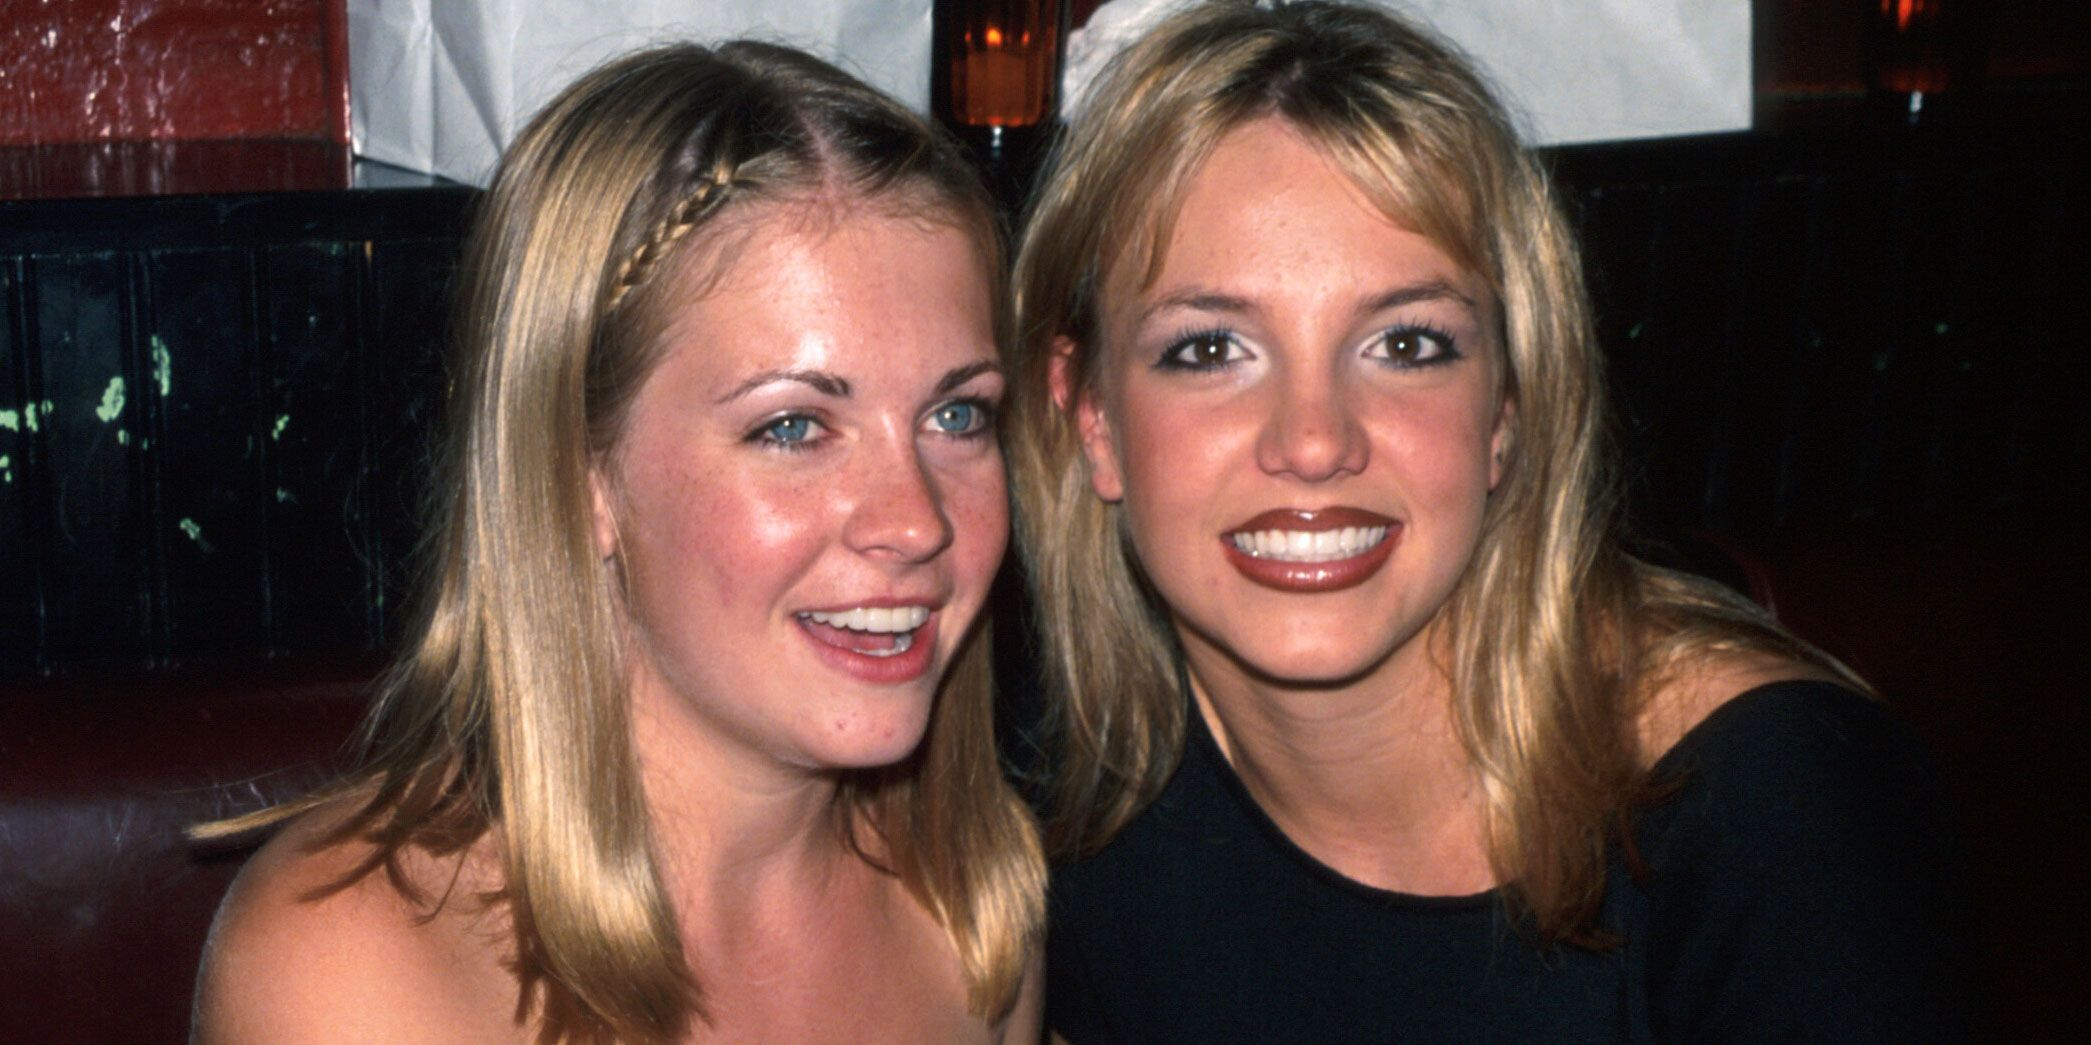 Melissa joan hart and britney spears are reunited in las vegas kristyandbryce Choice Image